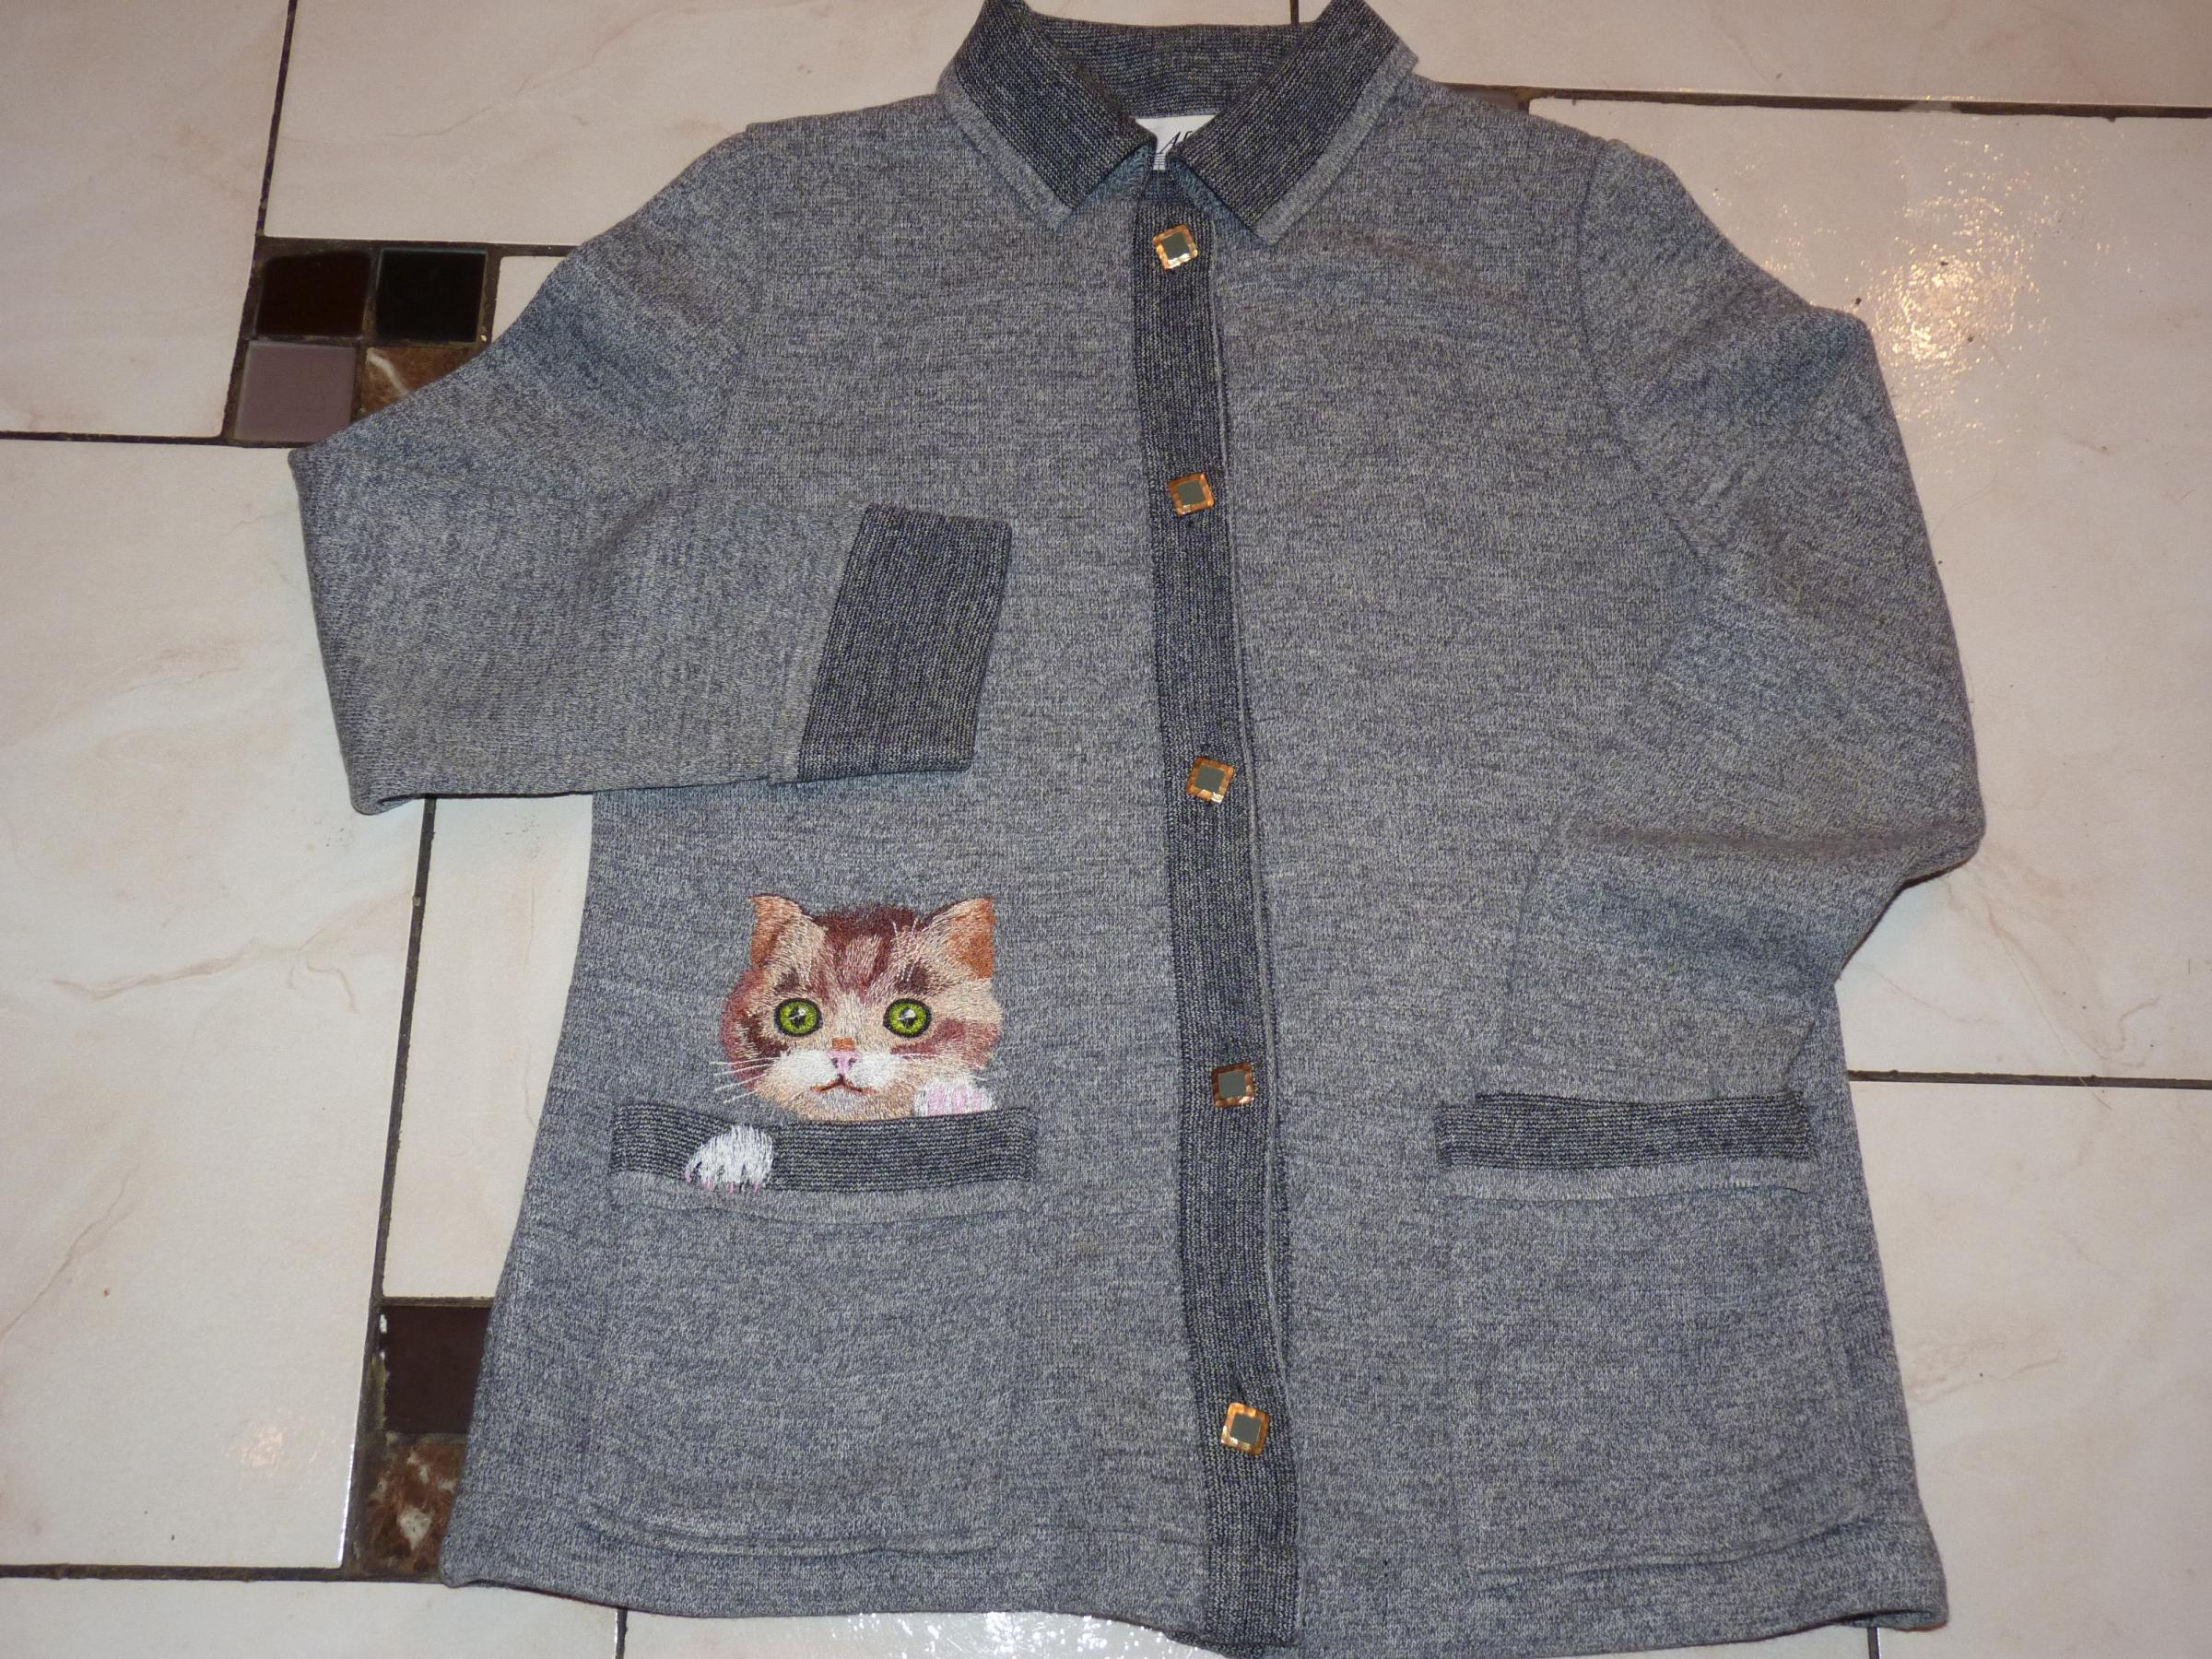 Embroidered cardigan with Kitty free design